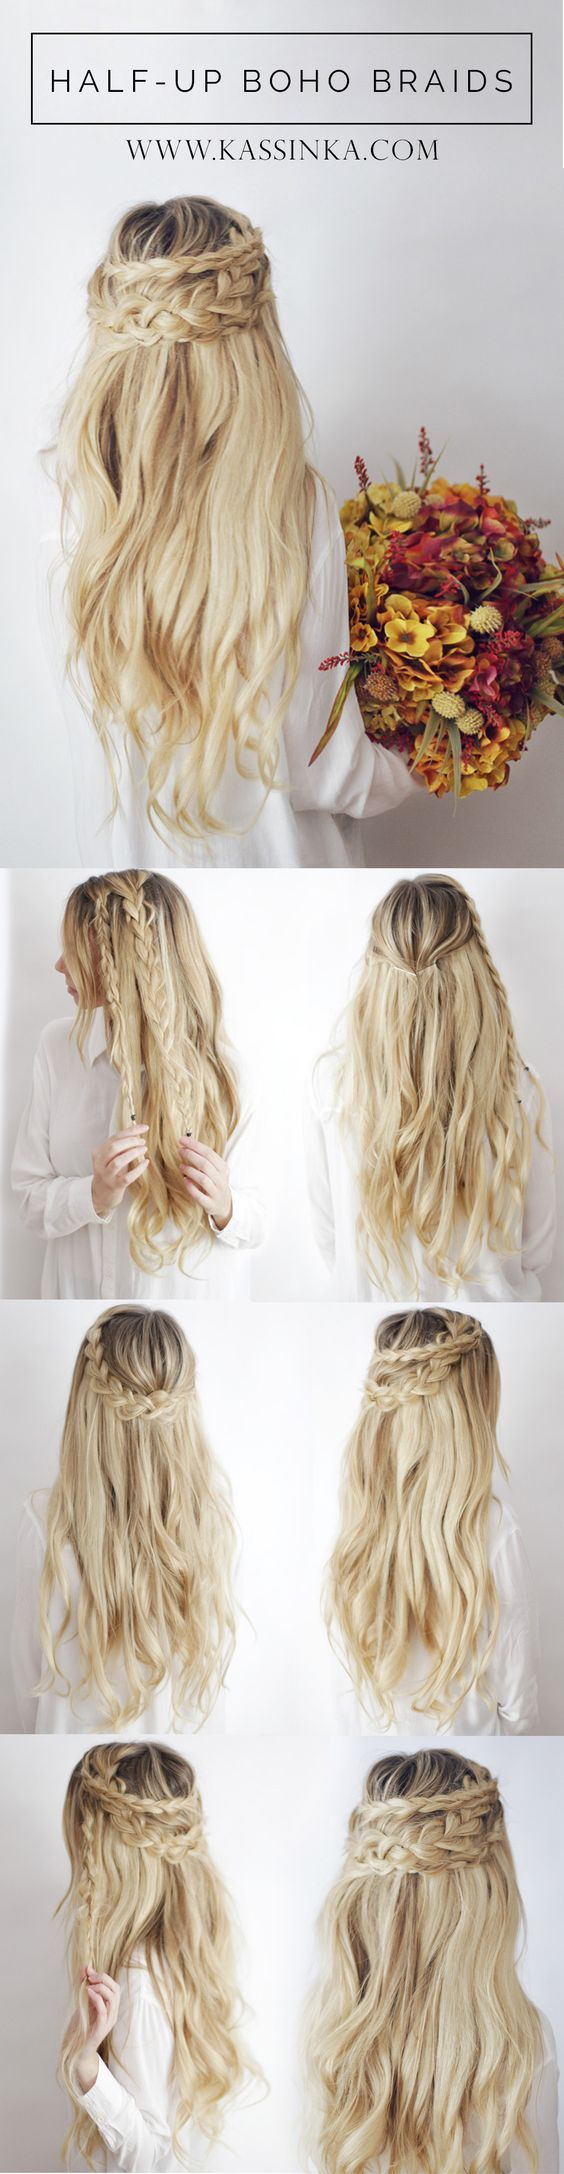 34 best Hairstyles for laci images on Pinterest | Hairstyle ideas ...